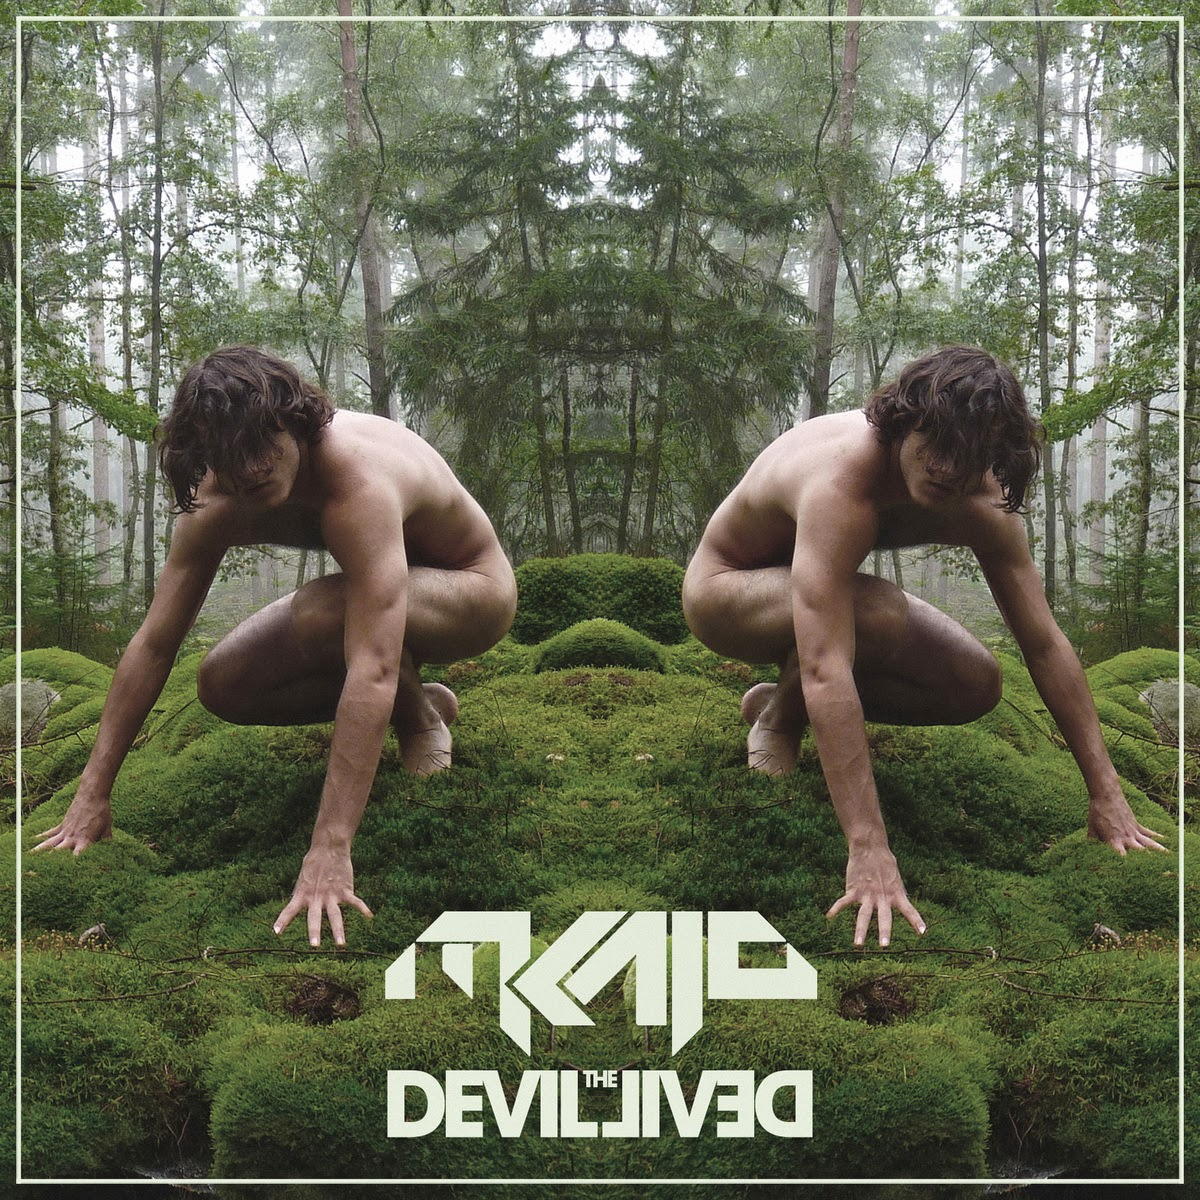 http://www.d4am.net/2014/07/mkaio-devil-lived.html